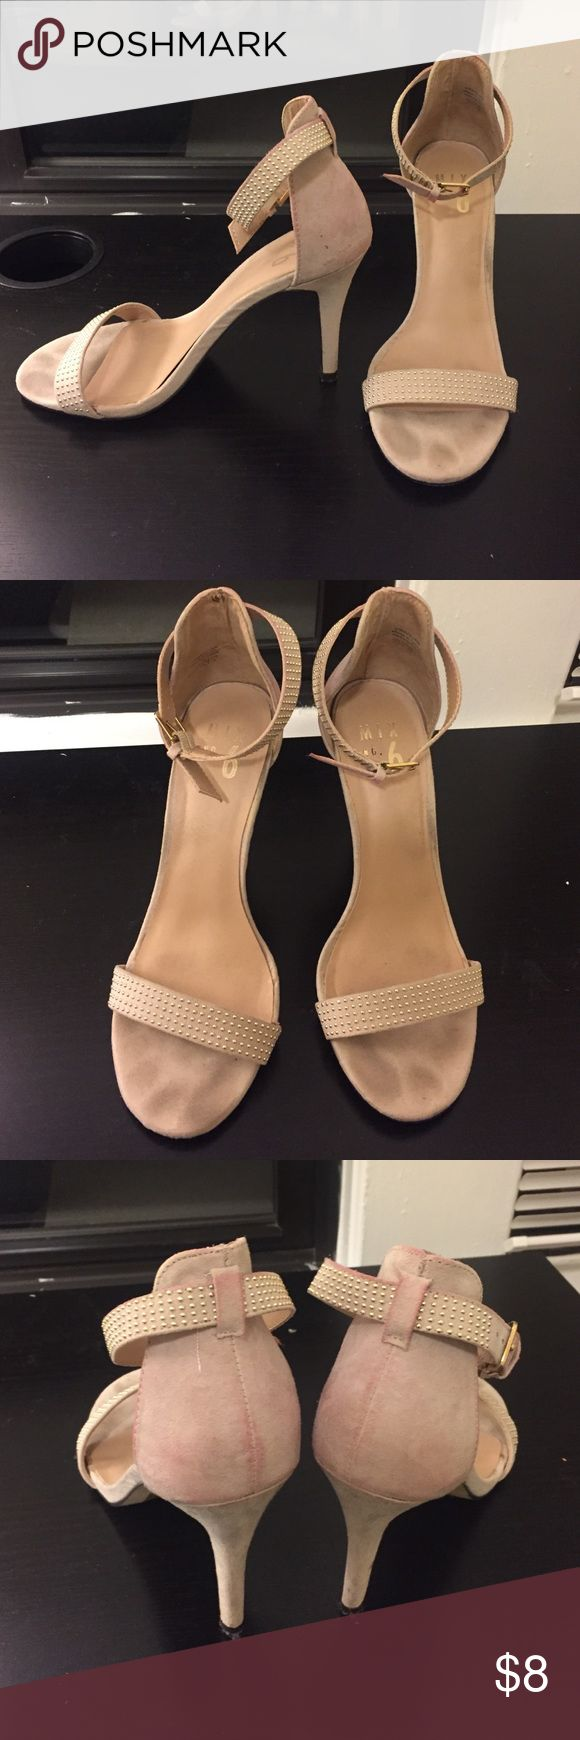 Strappy cream heeled sandals with gold studs Beautiful cream suede strappy heels with gold studs. Shoes only worn once. Slight suede discoloration from a previously worn dress but nothing a cleaning couldn't fix! Structurally in amazing shape. Mix No 6 Shoes Heels